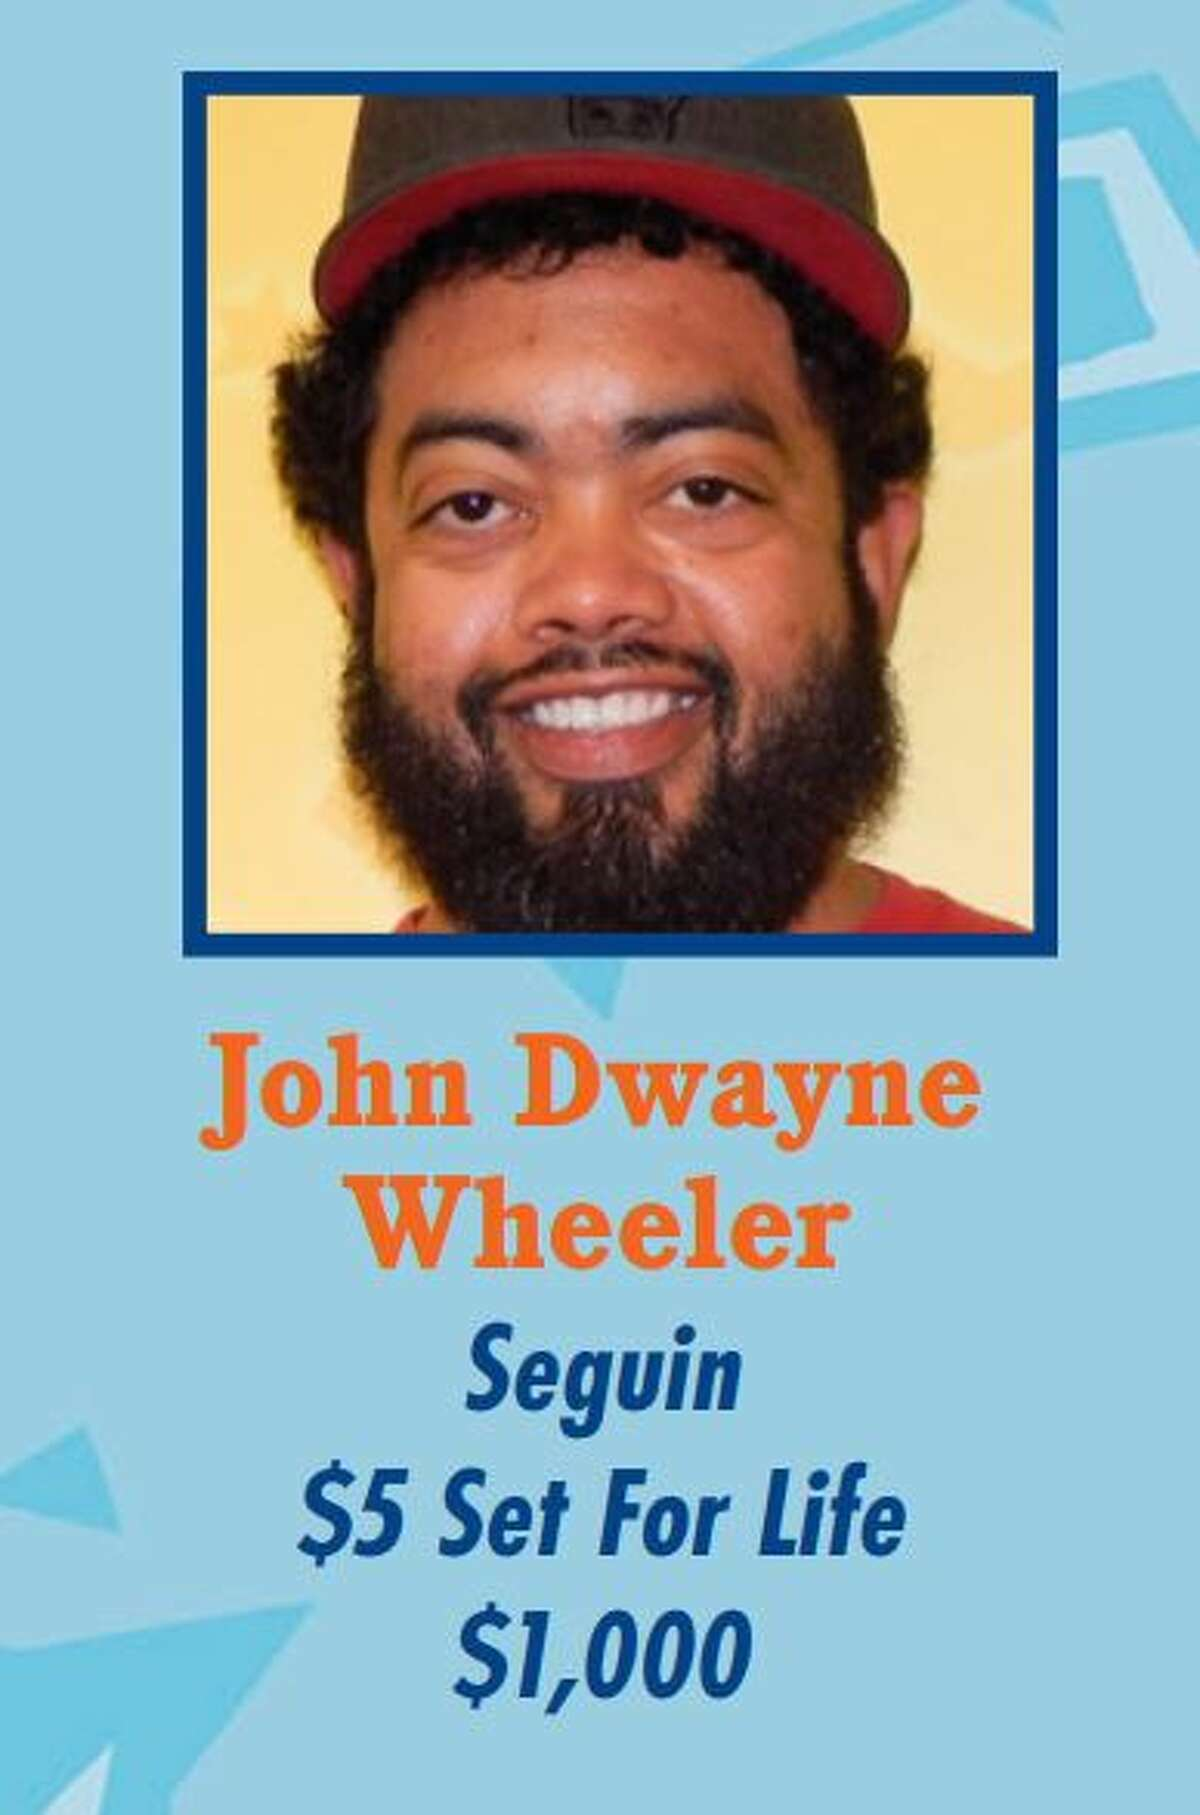 John Dwayne Wheeler Won: $1,000 Where: Seguin